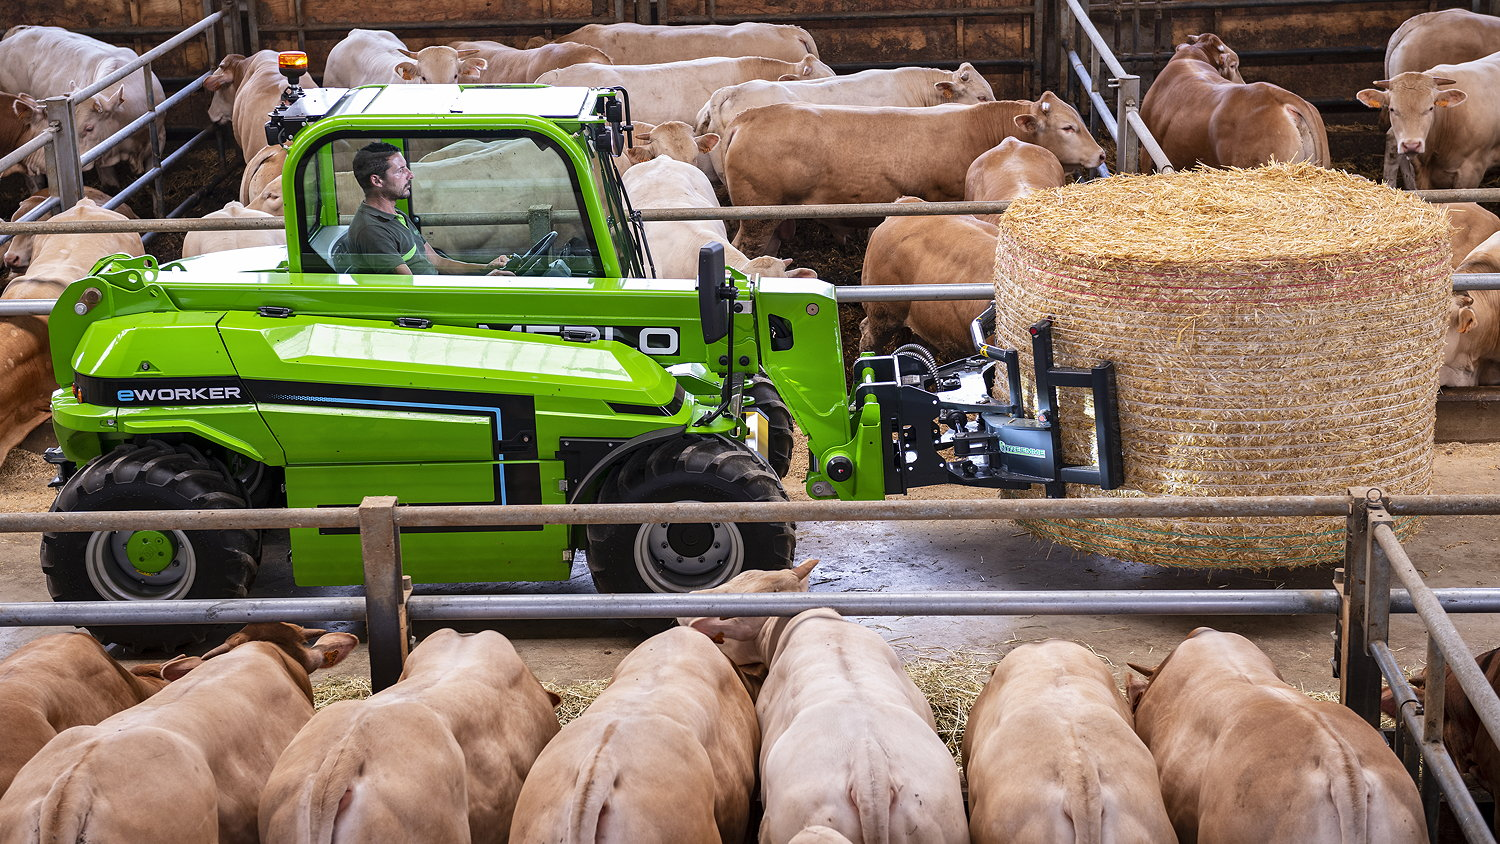 Merlo's new E-worker telehandler is available in Agri format